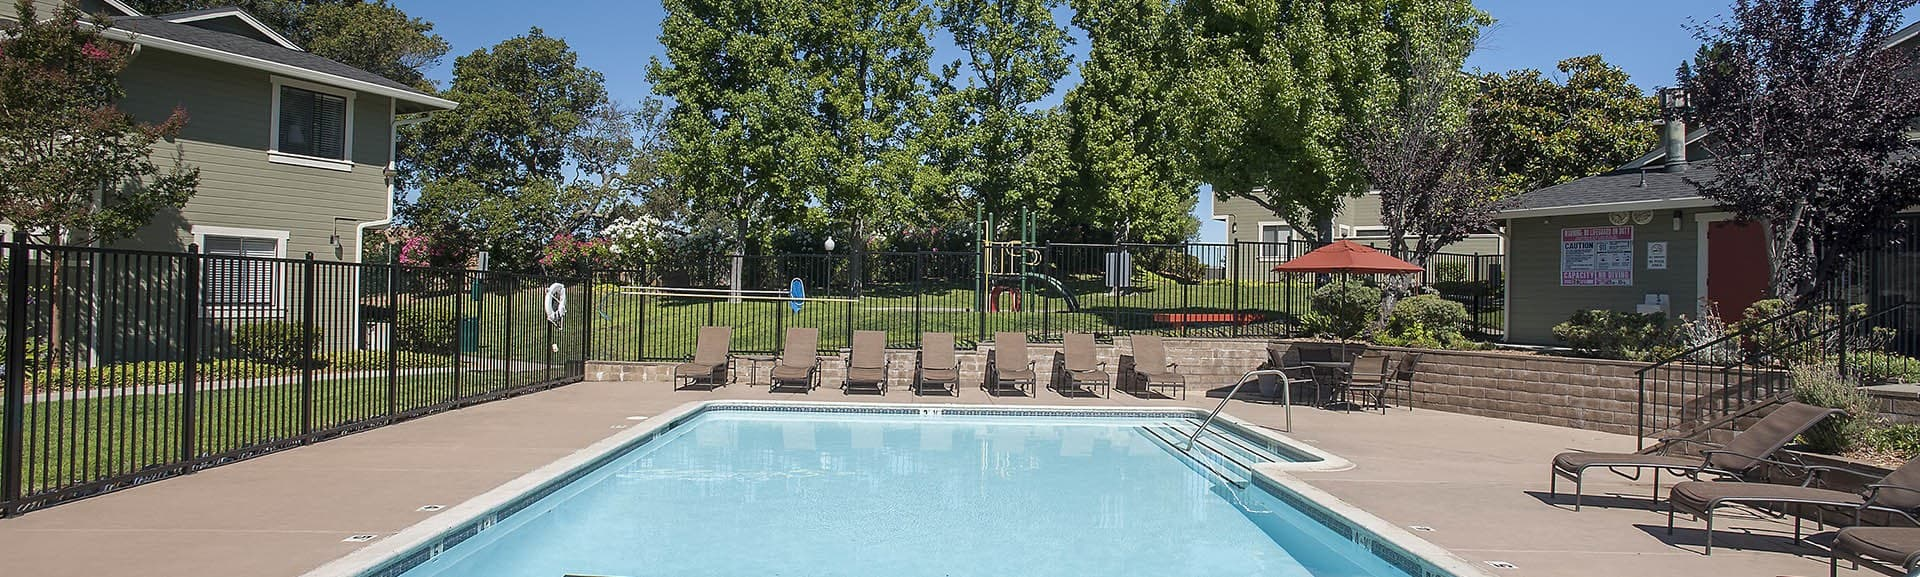 See what we have to offer by visiting Ridgecrest Apartment Homes's amenities page.